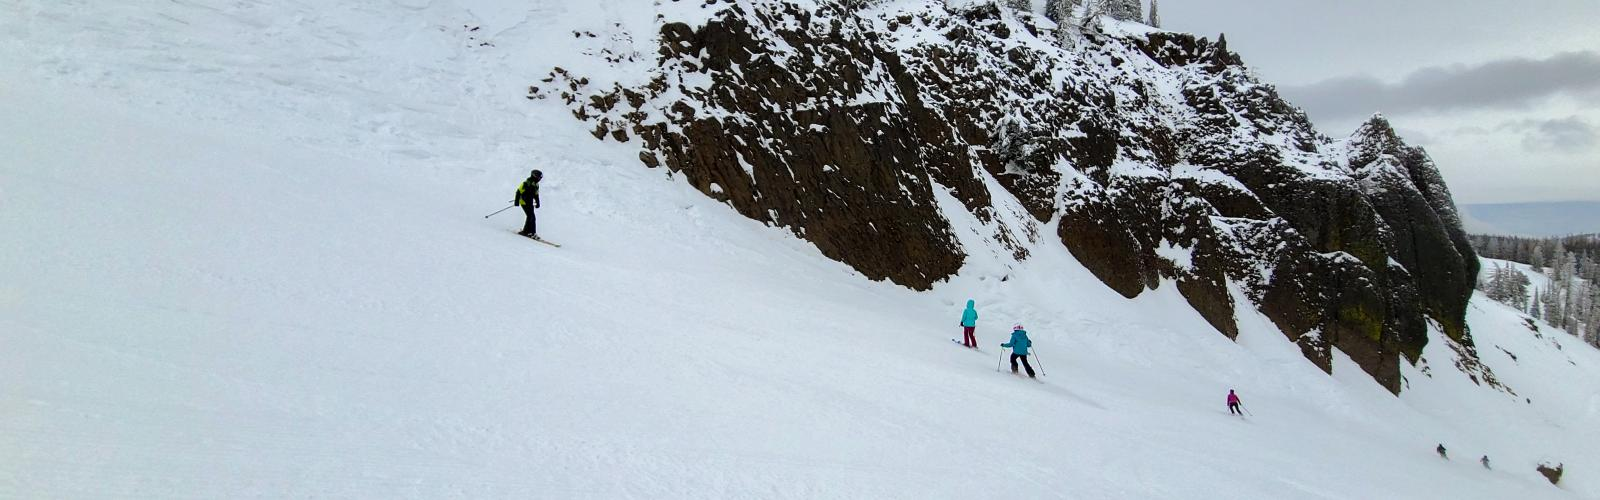 Family skiing down Bomber Bowl run with Bomber Cliffs in the background